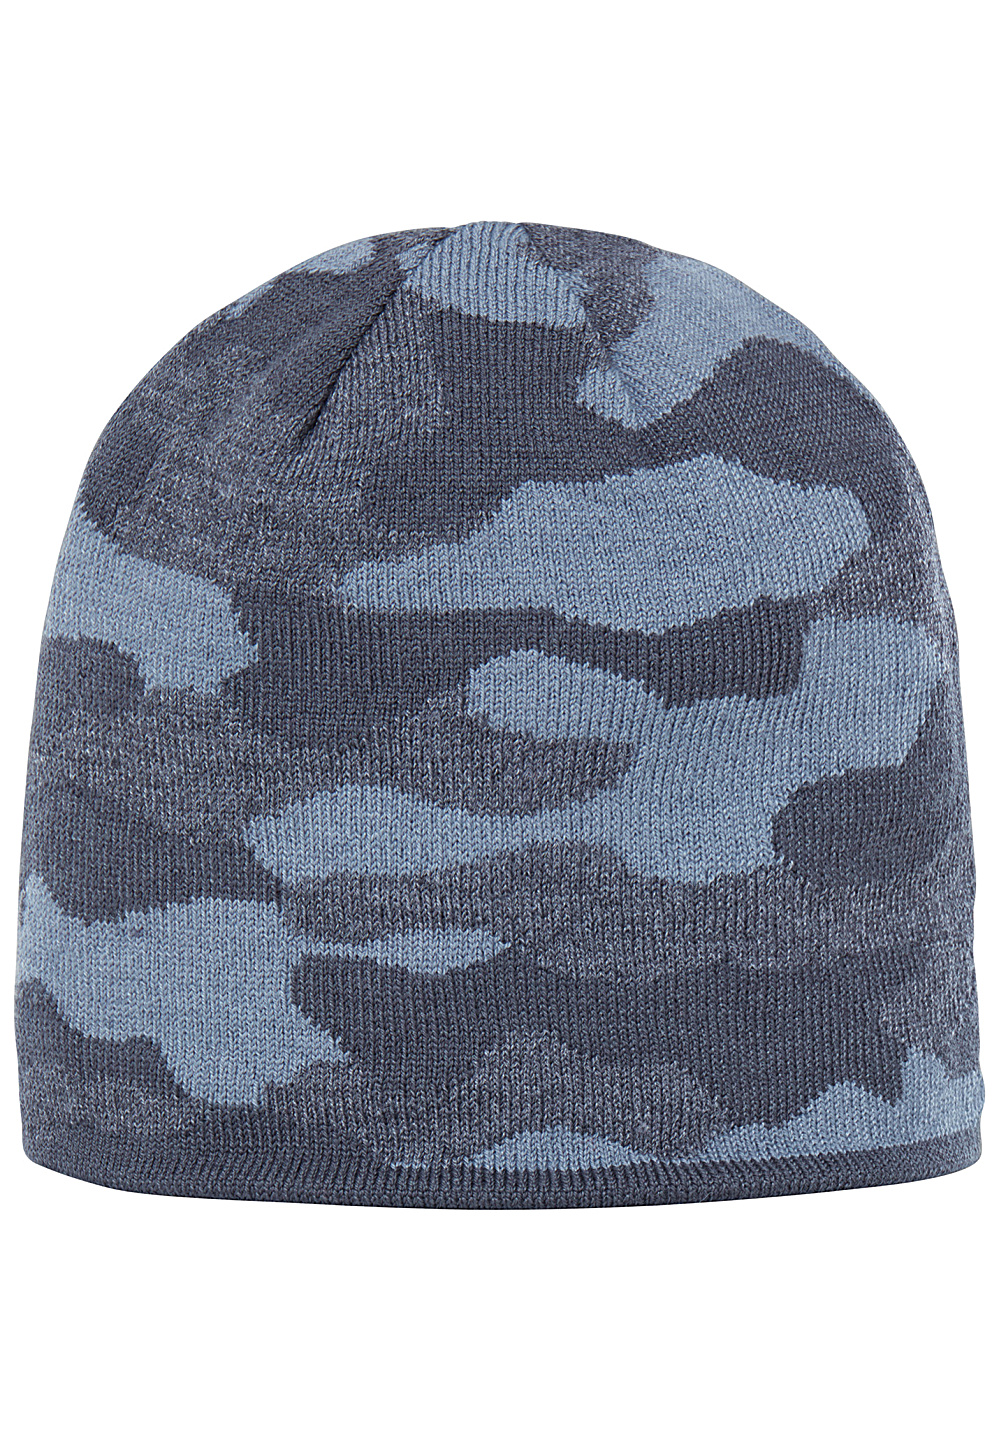 45e1ee396 THE NORTH FACE Highline - Beanie for Men - Grey